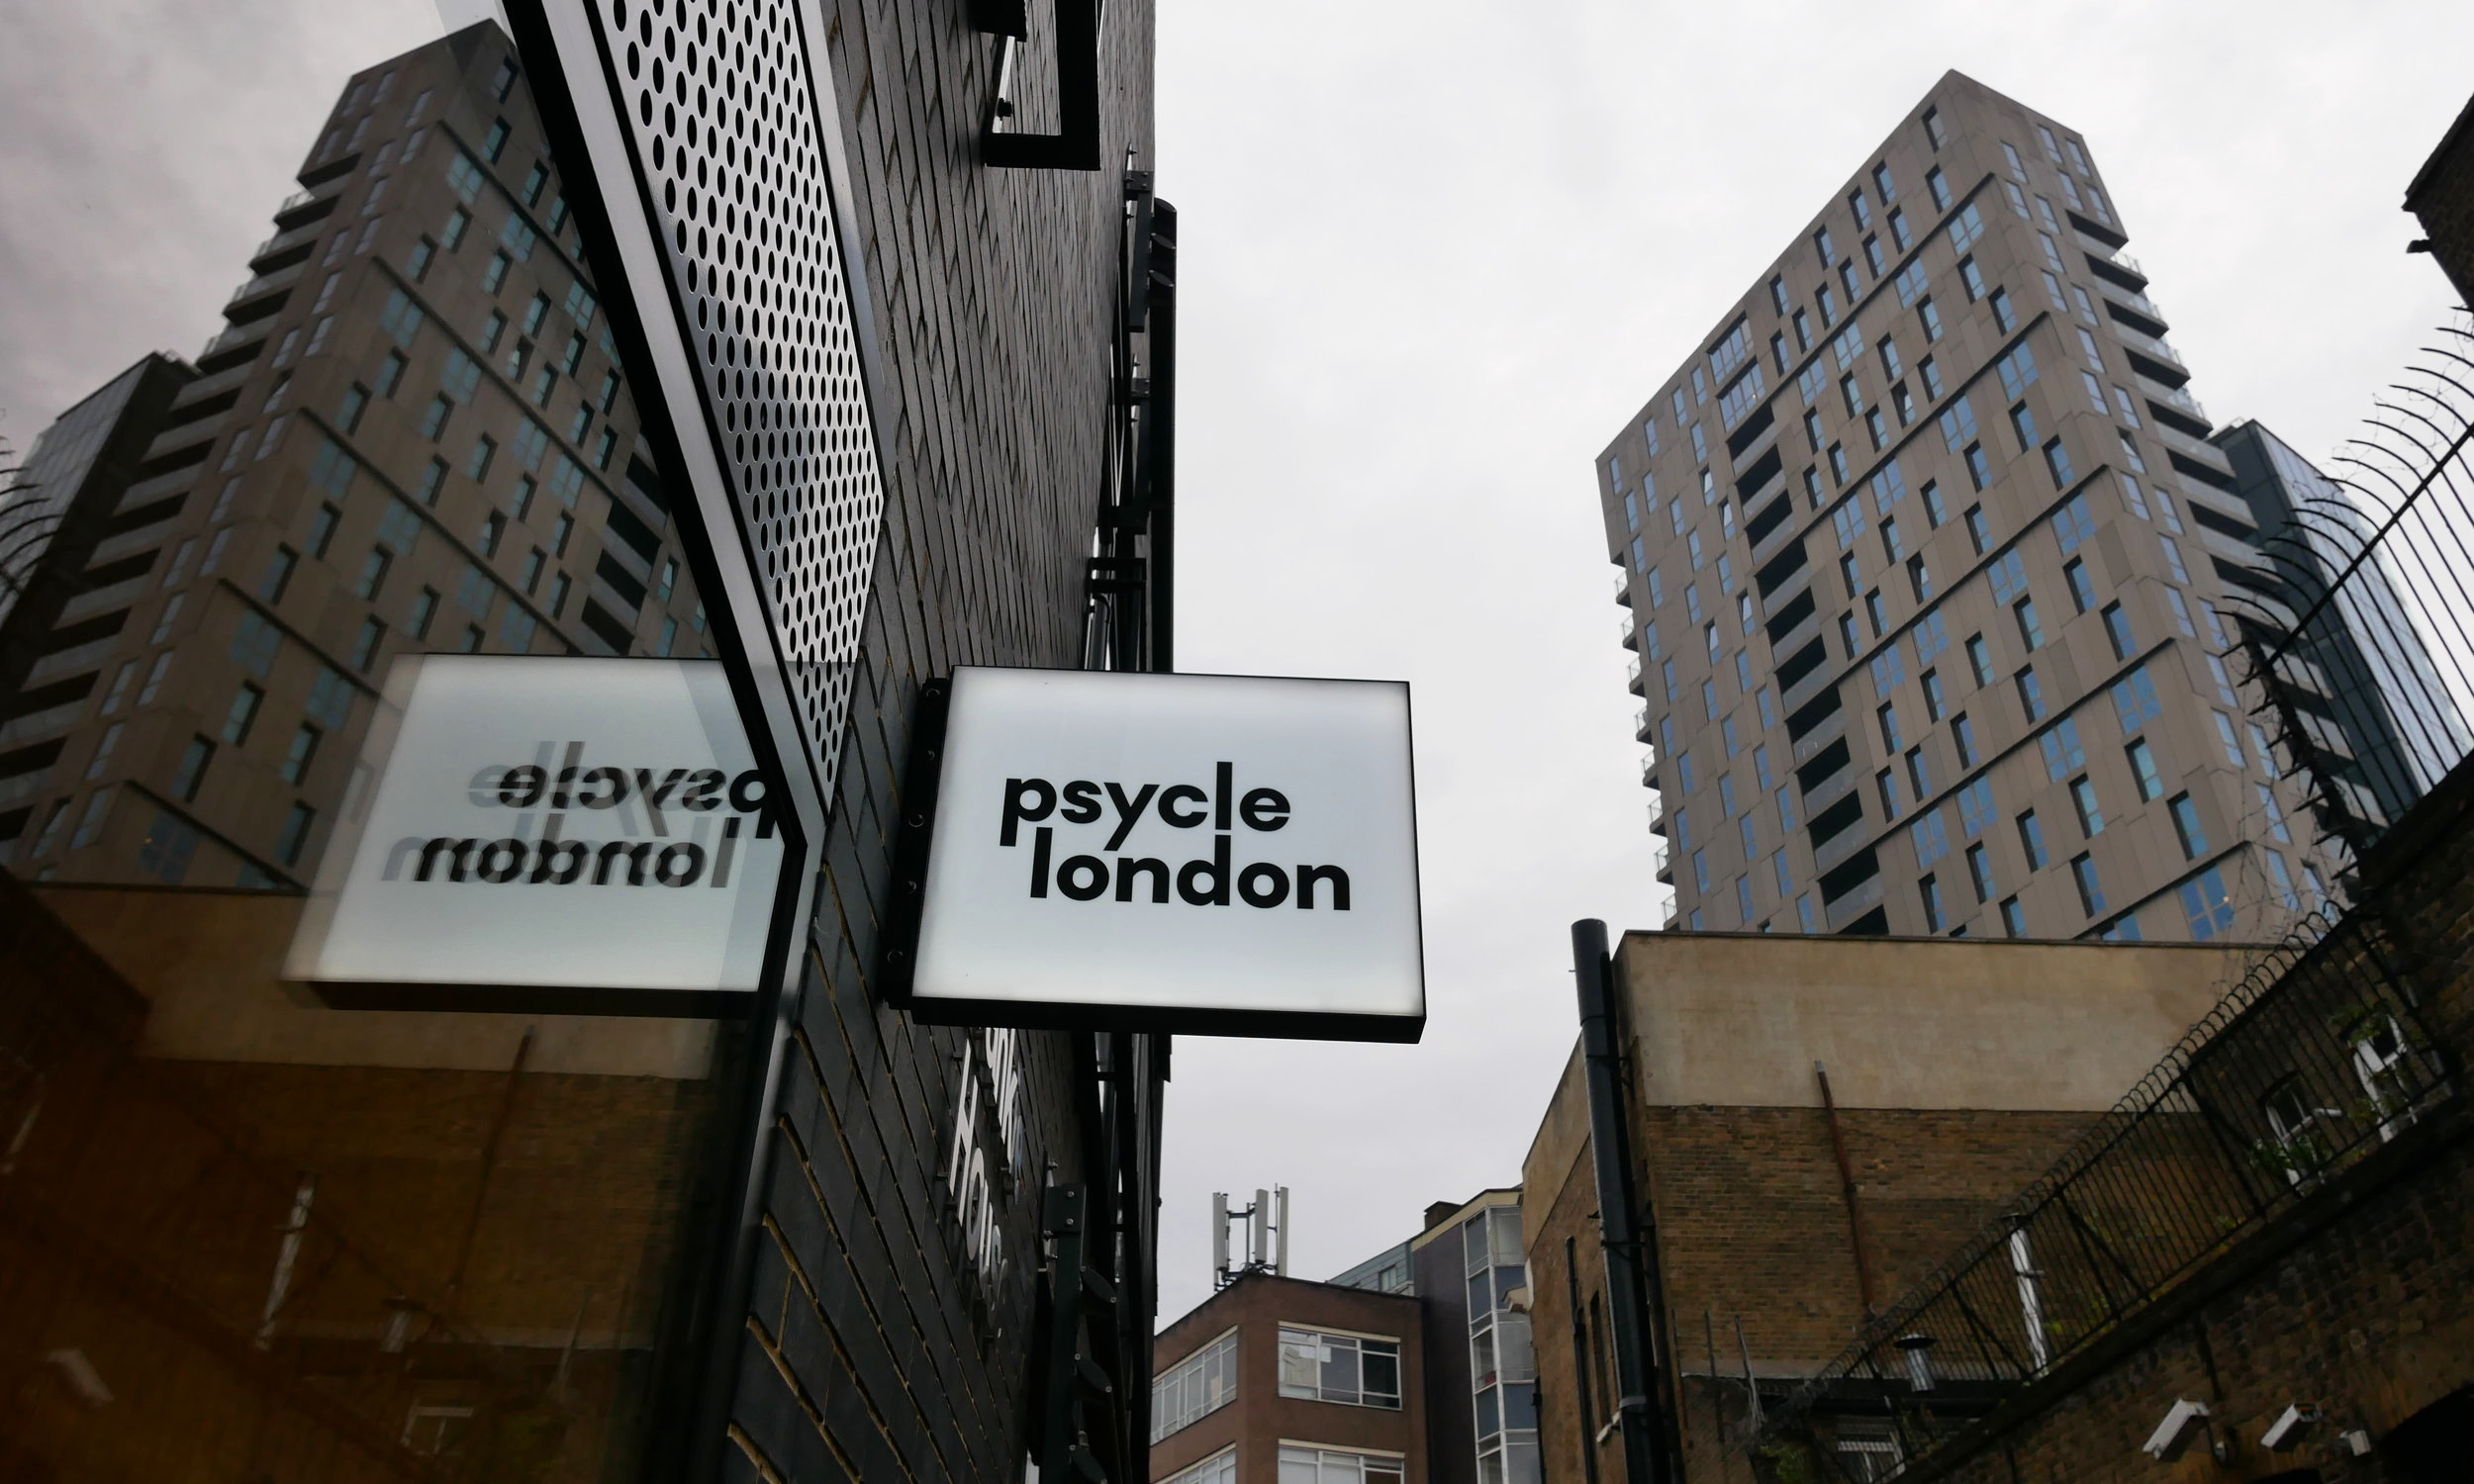 Psycle Shoreditch, where all the hipsters like to spin